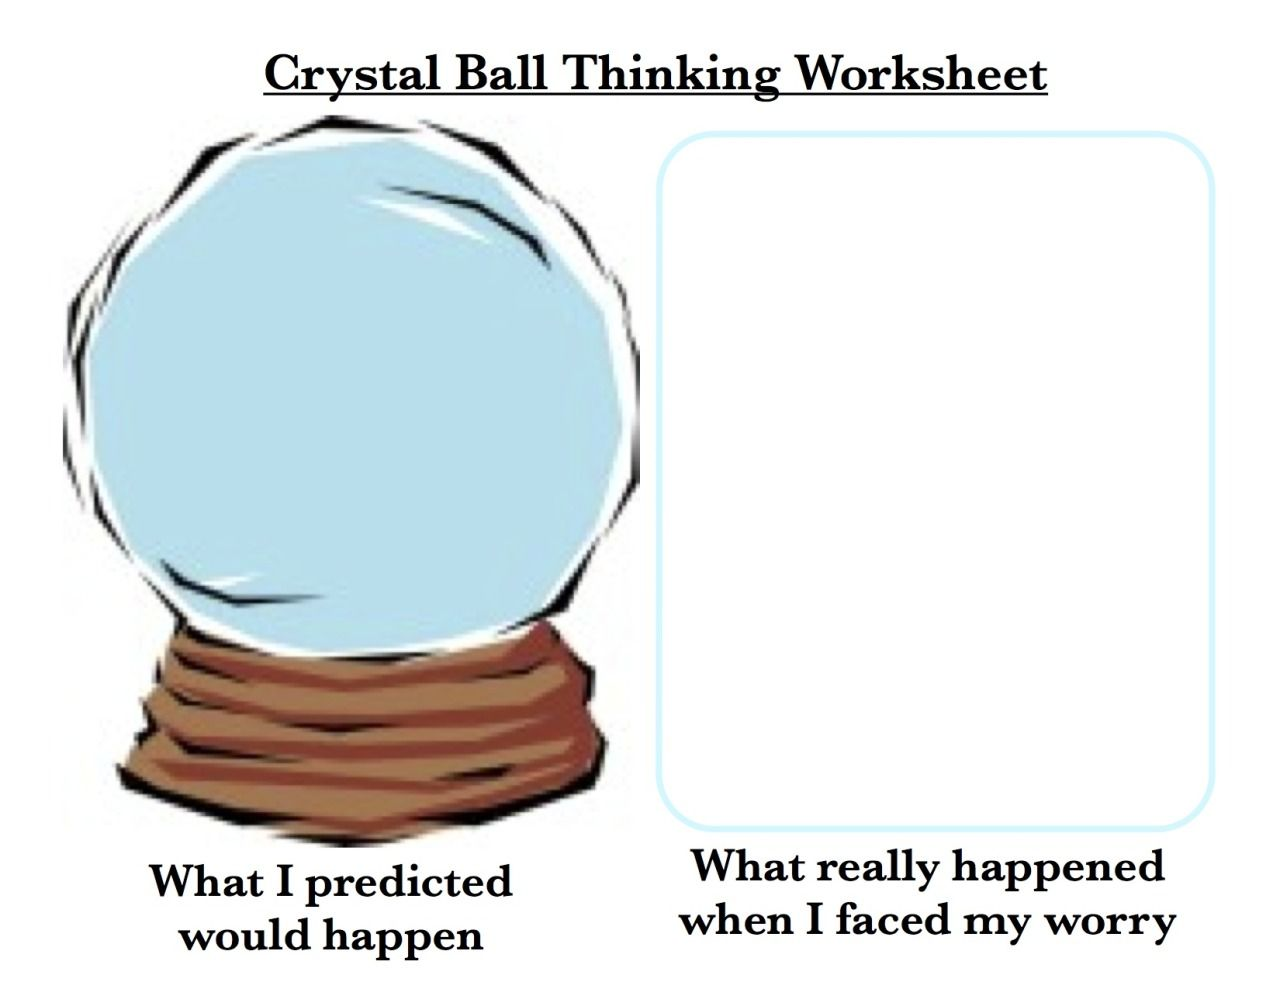 Crystal Ball Thinking Worksheet